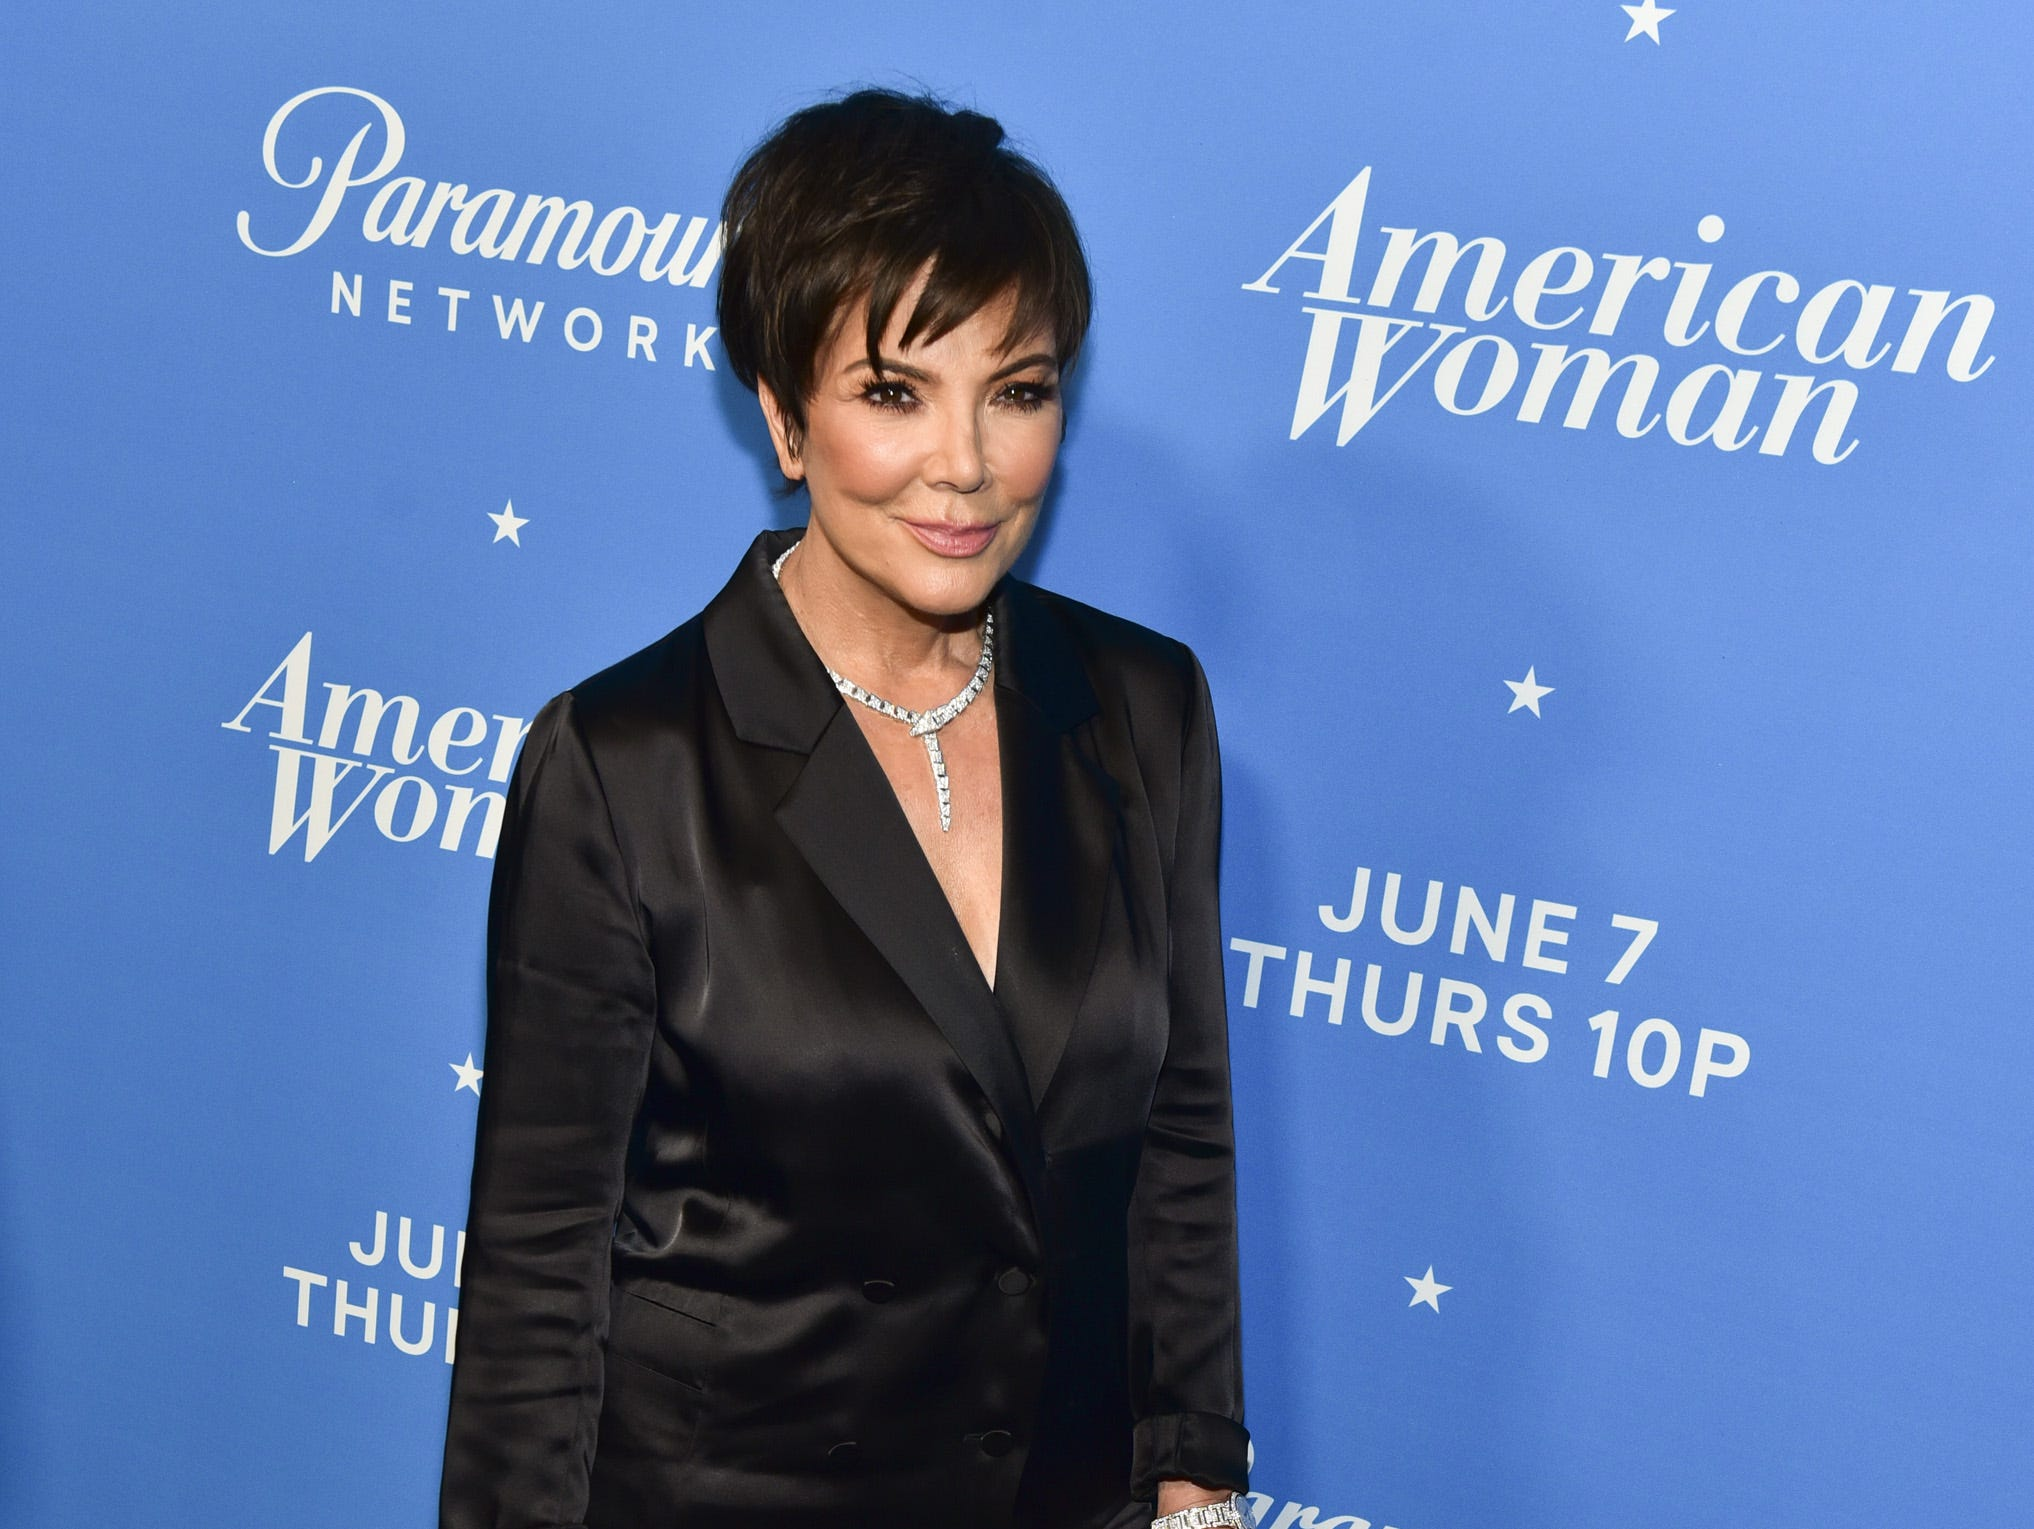 "LOS ANGELES, CA - MAY 31:  Kris Jenner attends the premiere of Paramount Network's ""American Woman"" at Chateau Marmont on May 31, 2018 in Los Angeles, California.  (Photo by Rodin Eckenroth/WireImage) ORG XMIT: 775169156 ORIG FILE ID: 964679056"